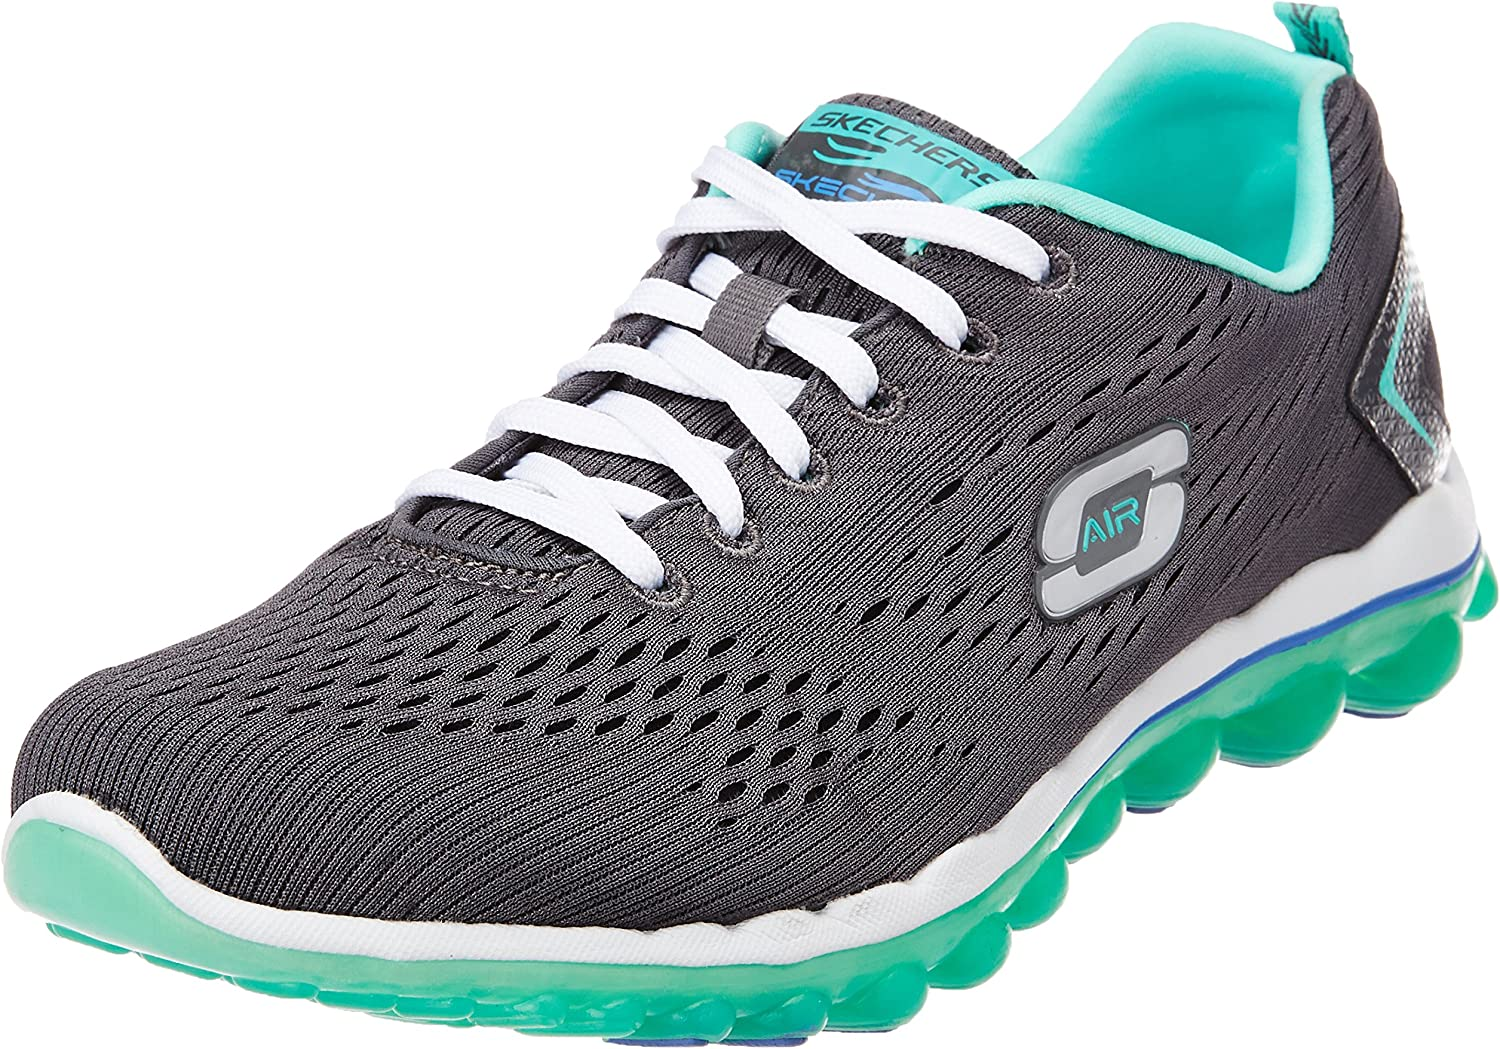 Skechers Sport Women s Skech Air Run High Fashion Sneaker